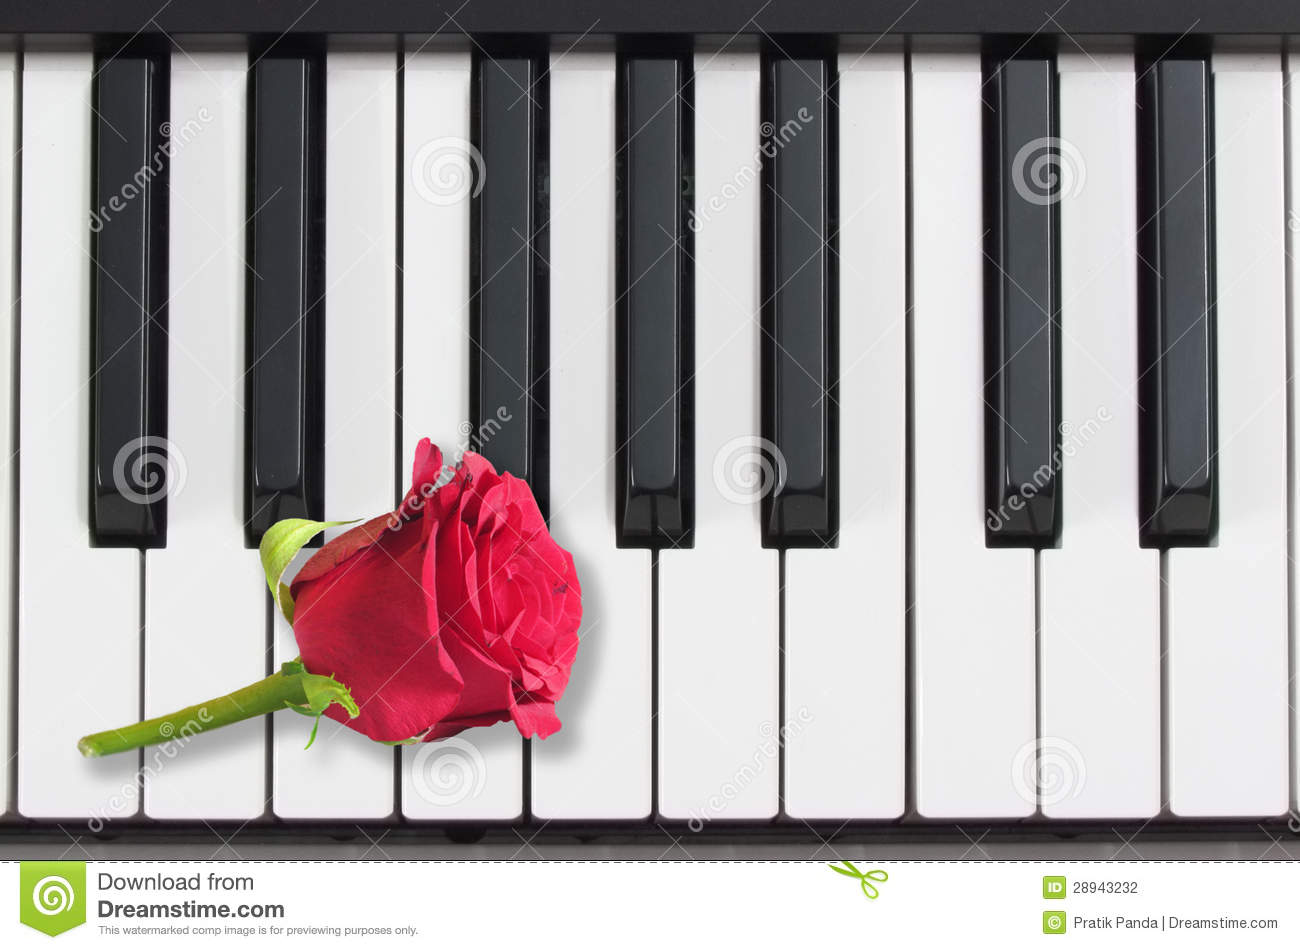 Image Result For Royalty Free Romantic Music Free Download